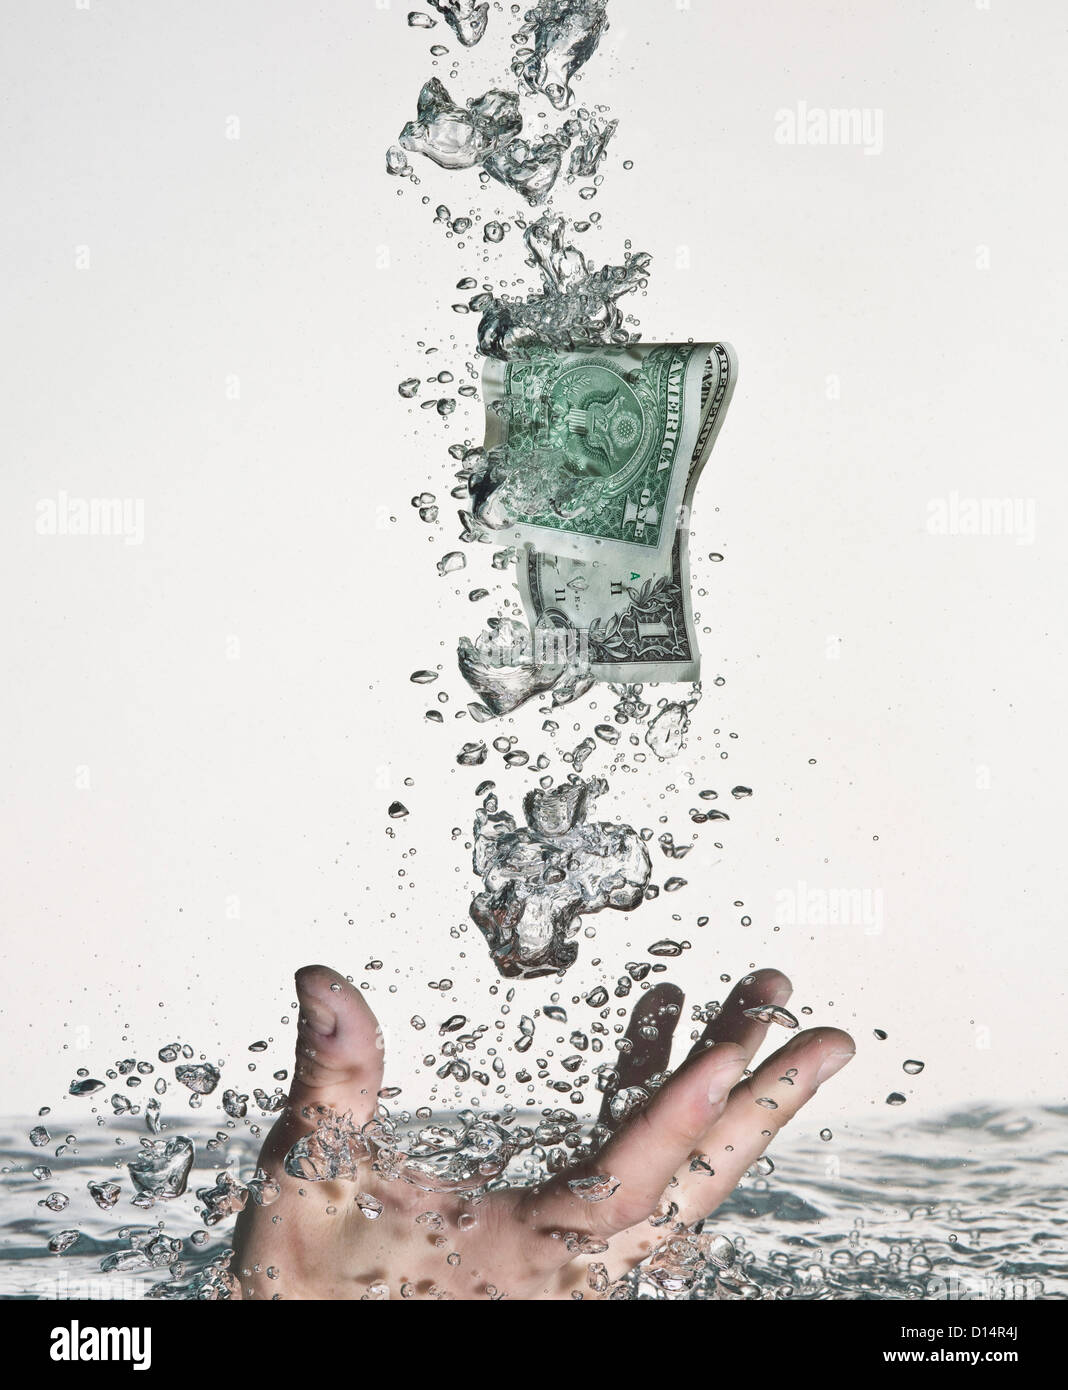 Hand grasping dollar bill in water - Stock Image